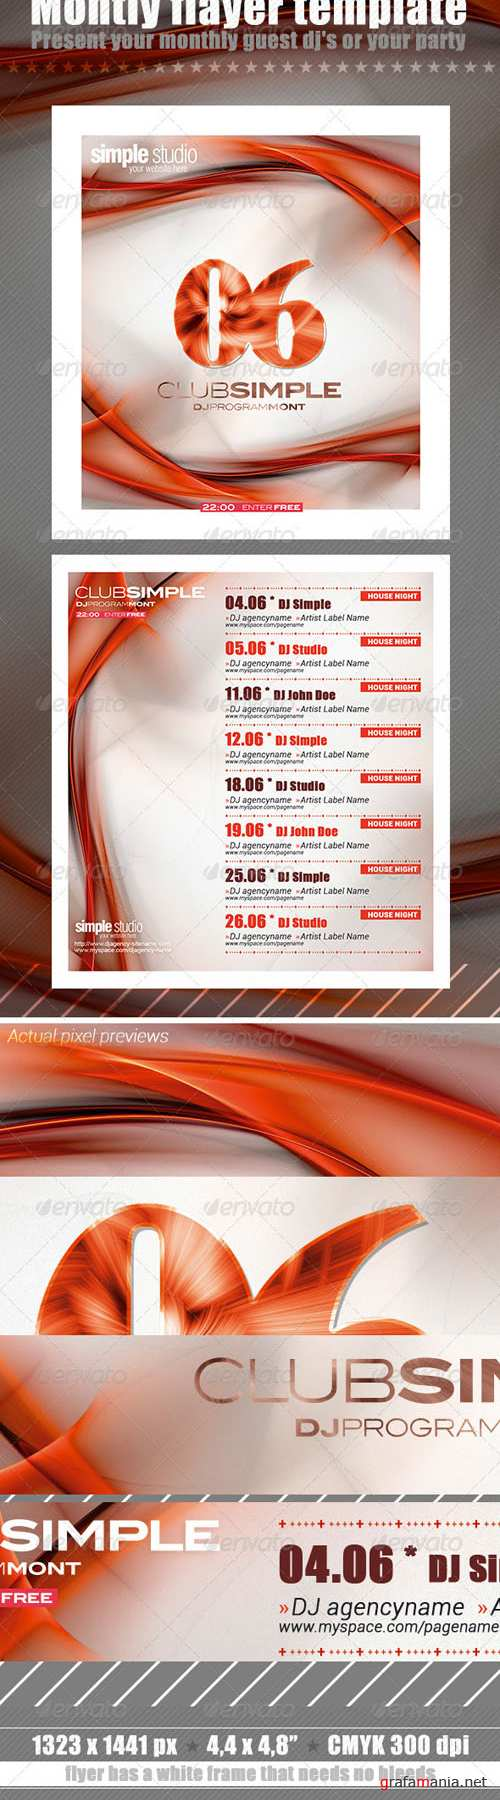 GraphicRiver - Monthly Flayer Template 2542759